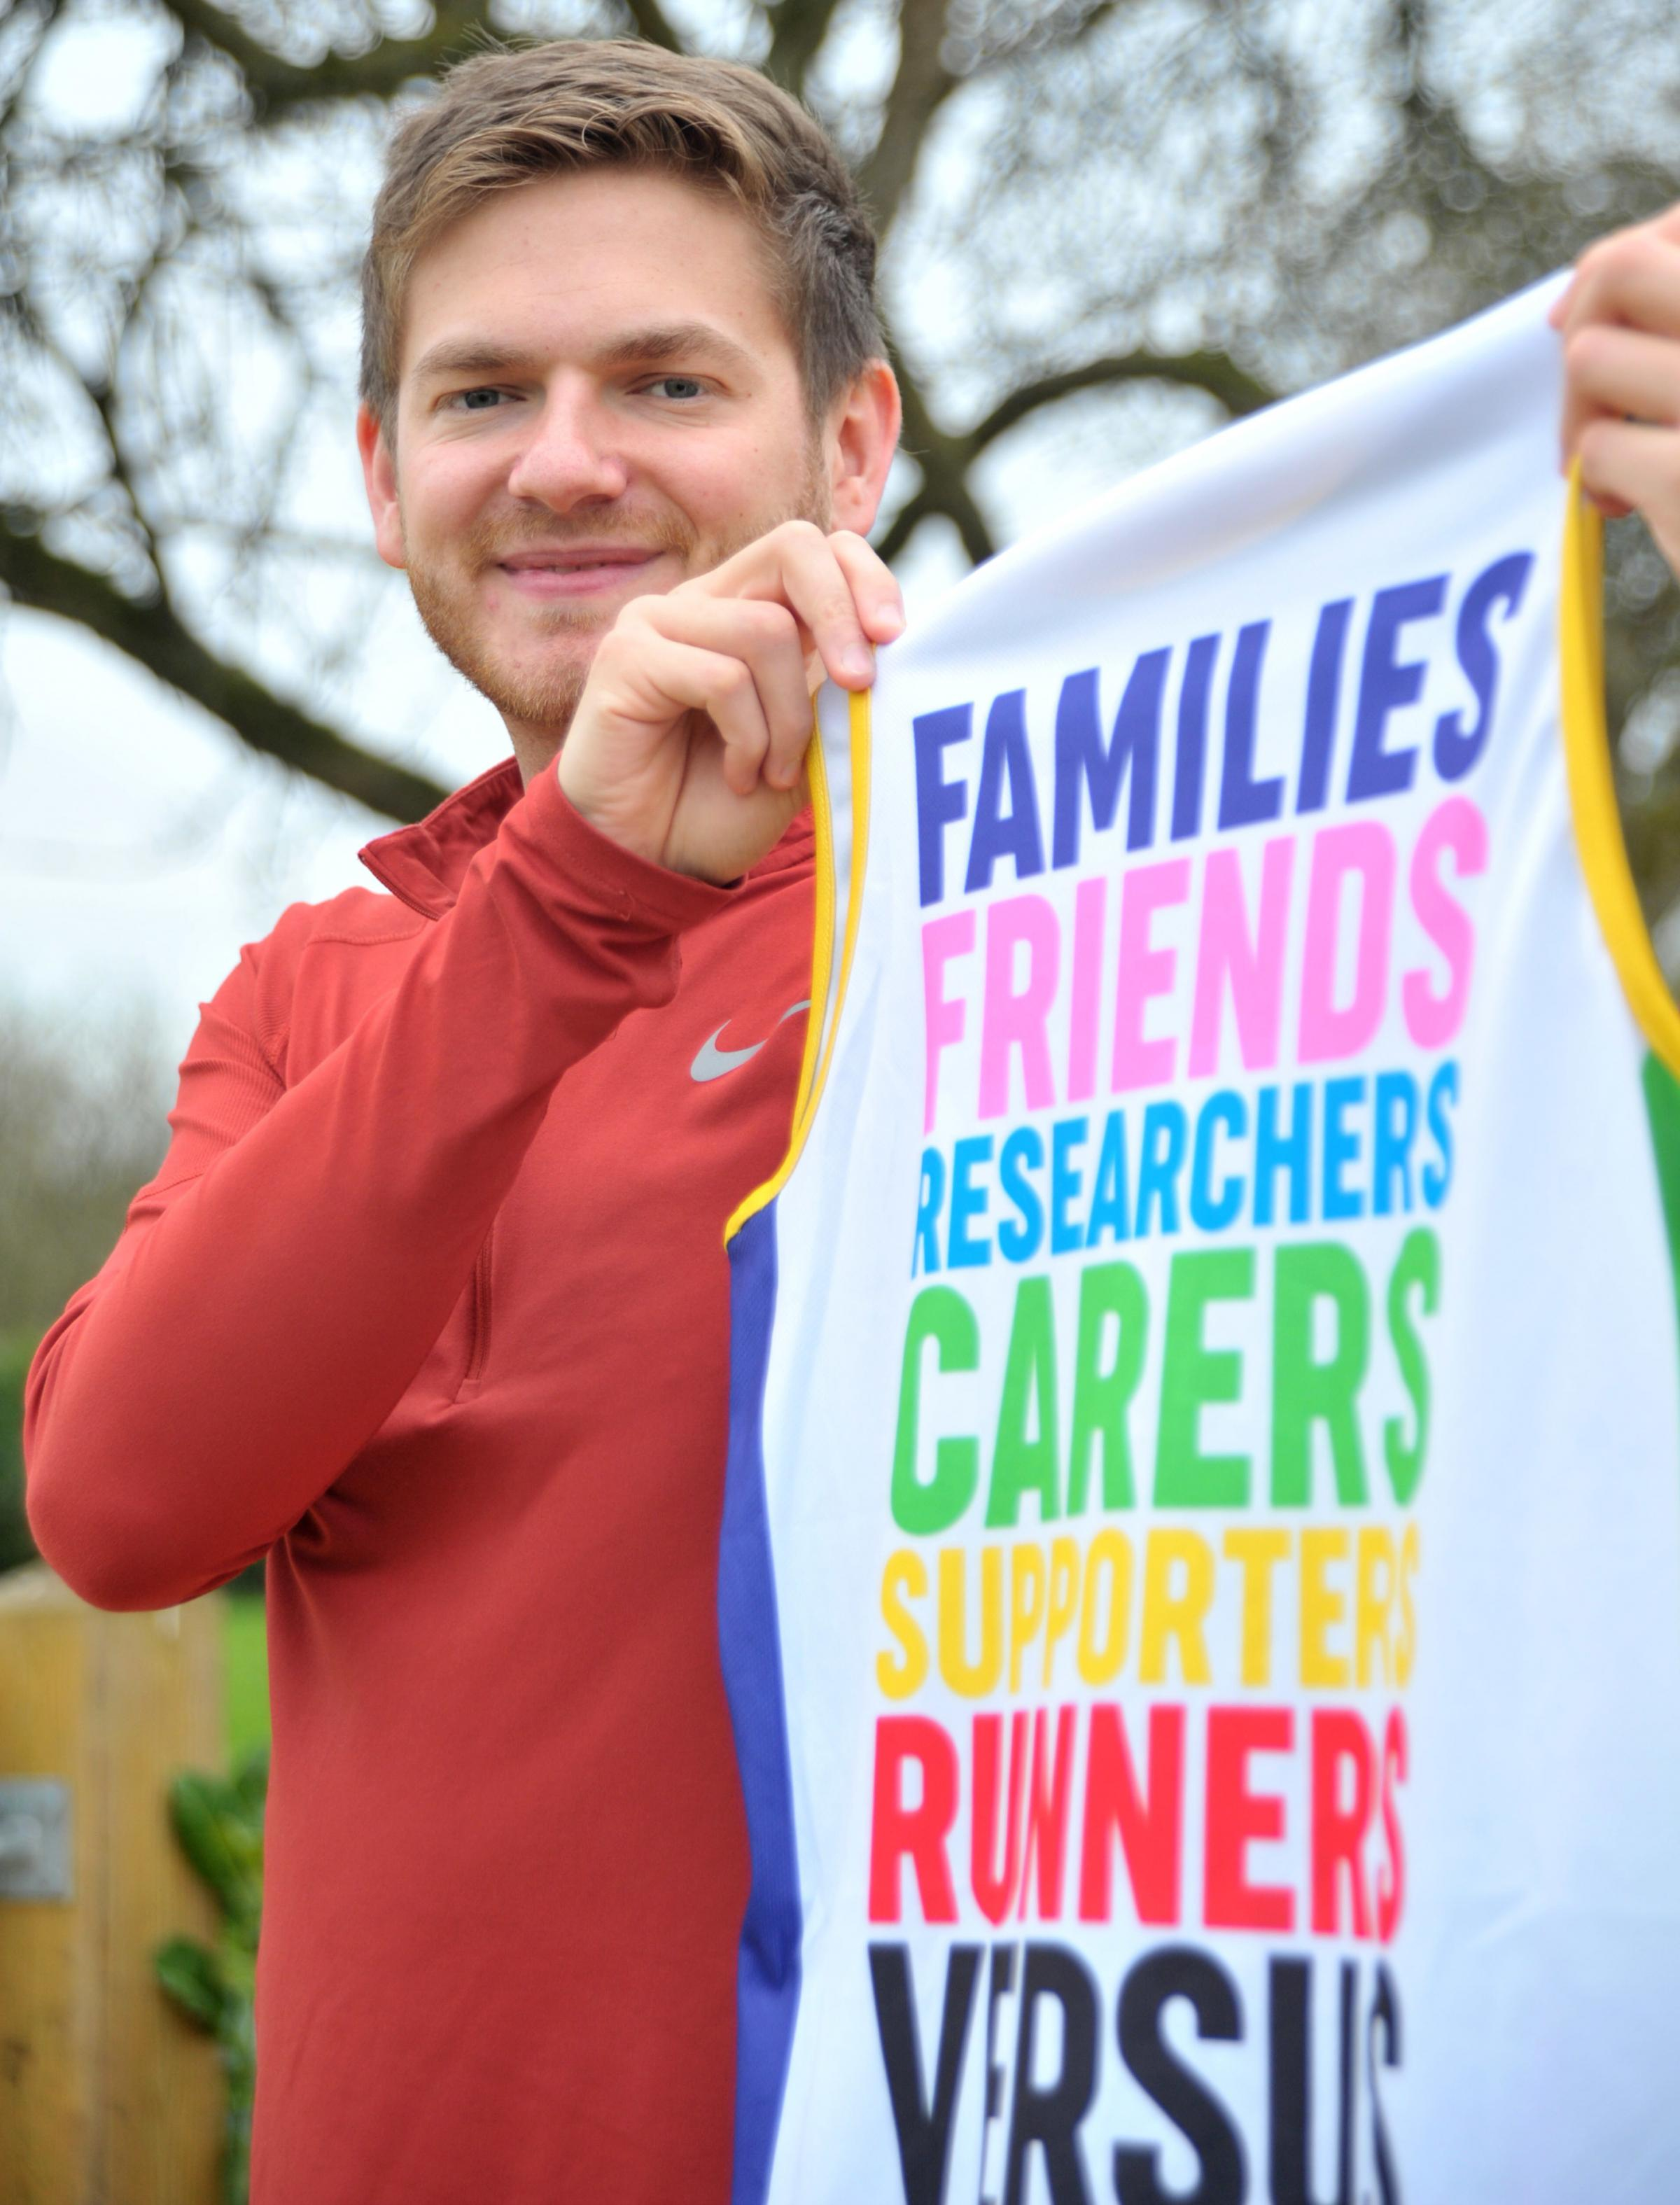 Arthritis sufferer Tom could hardly walk for the bus - now he's running a marathon